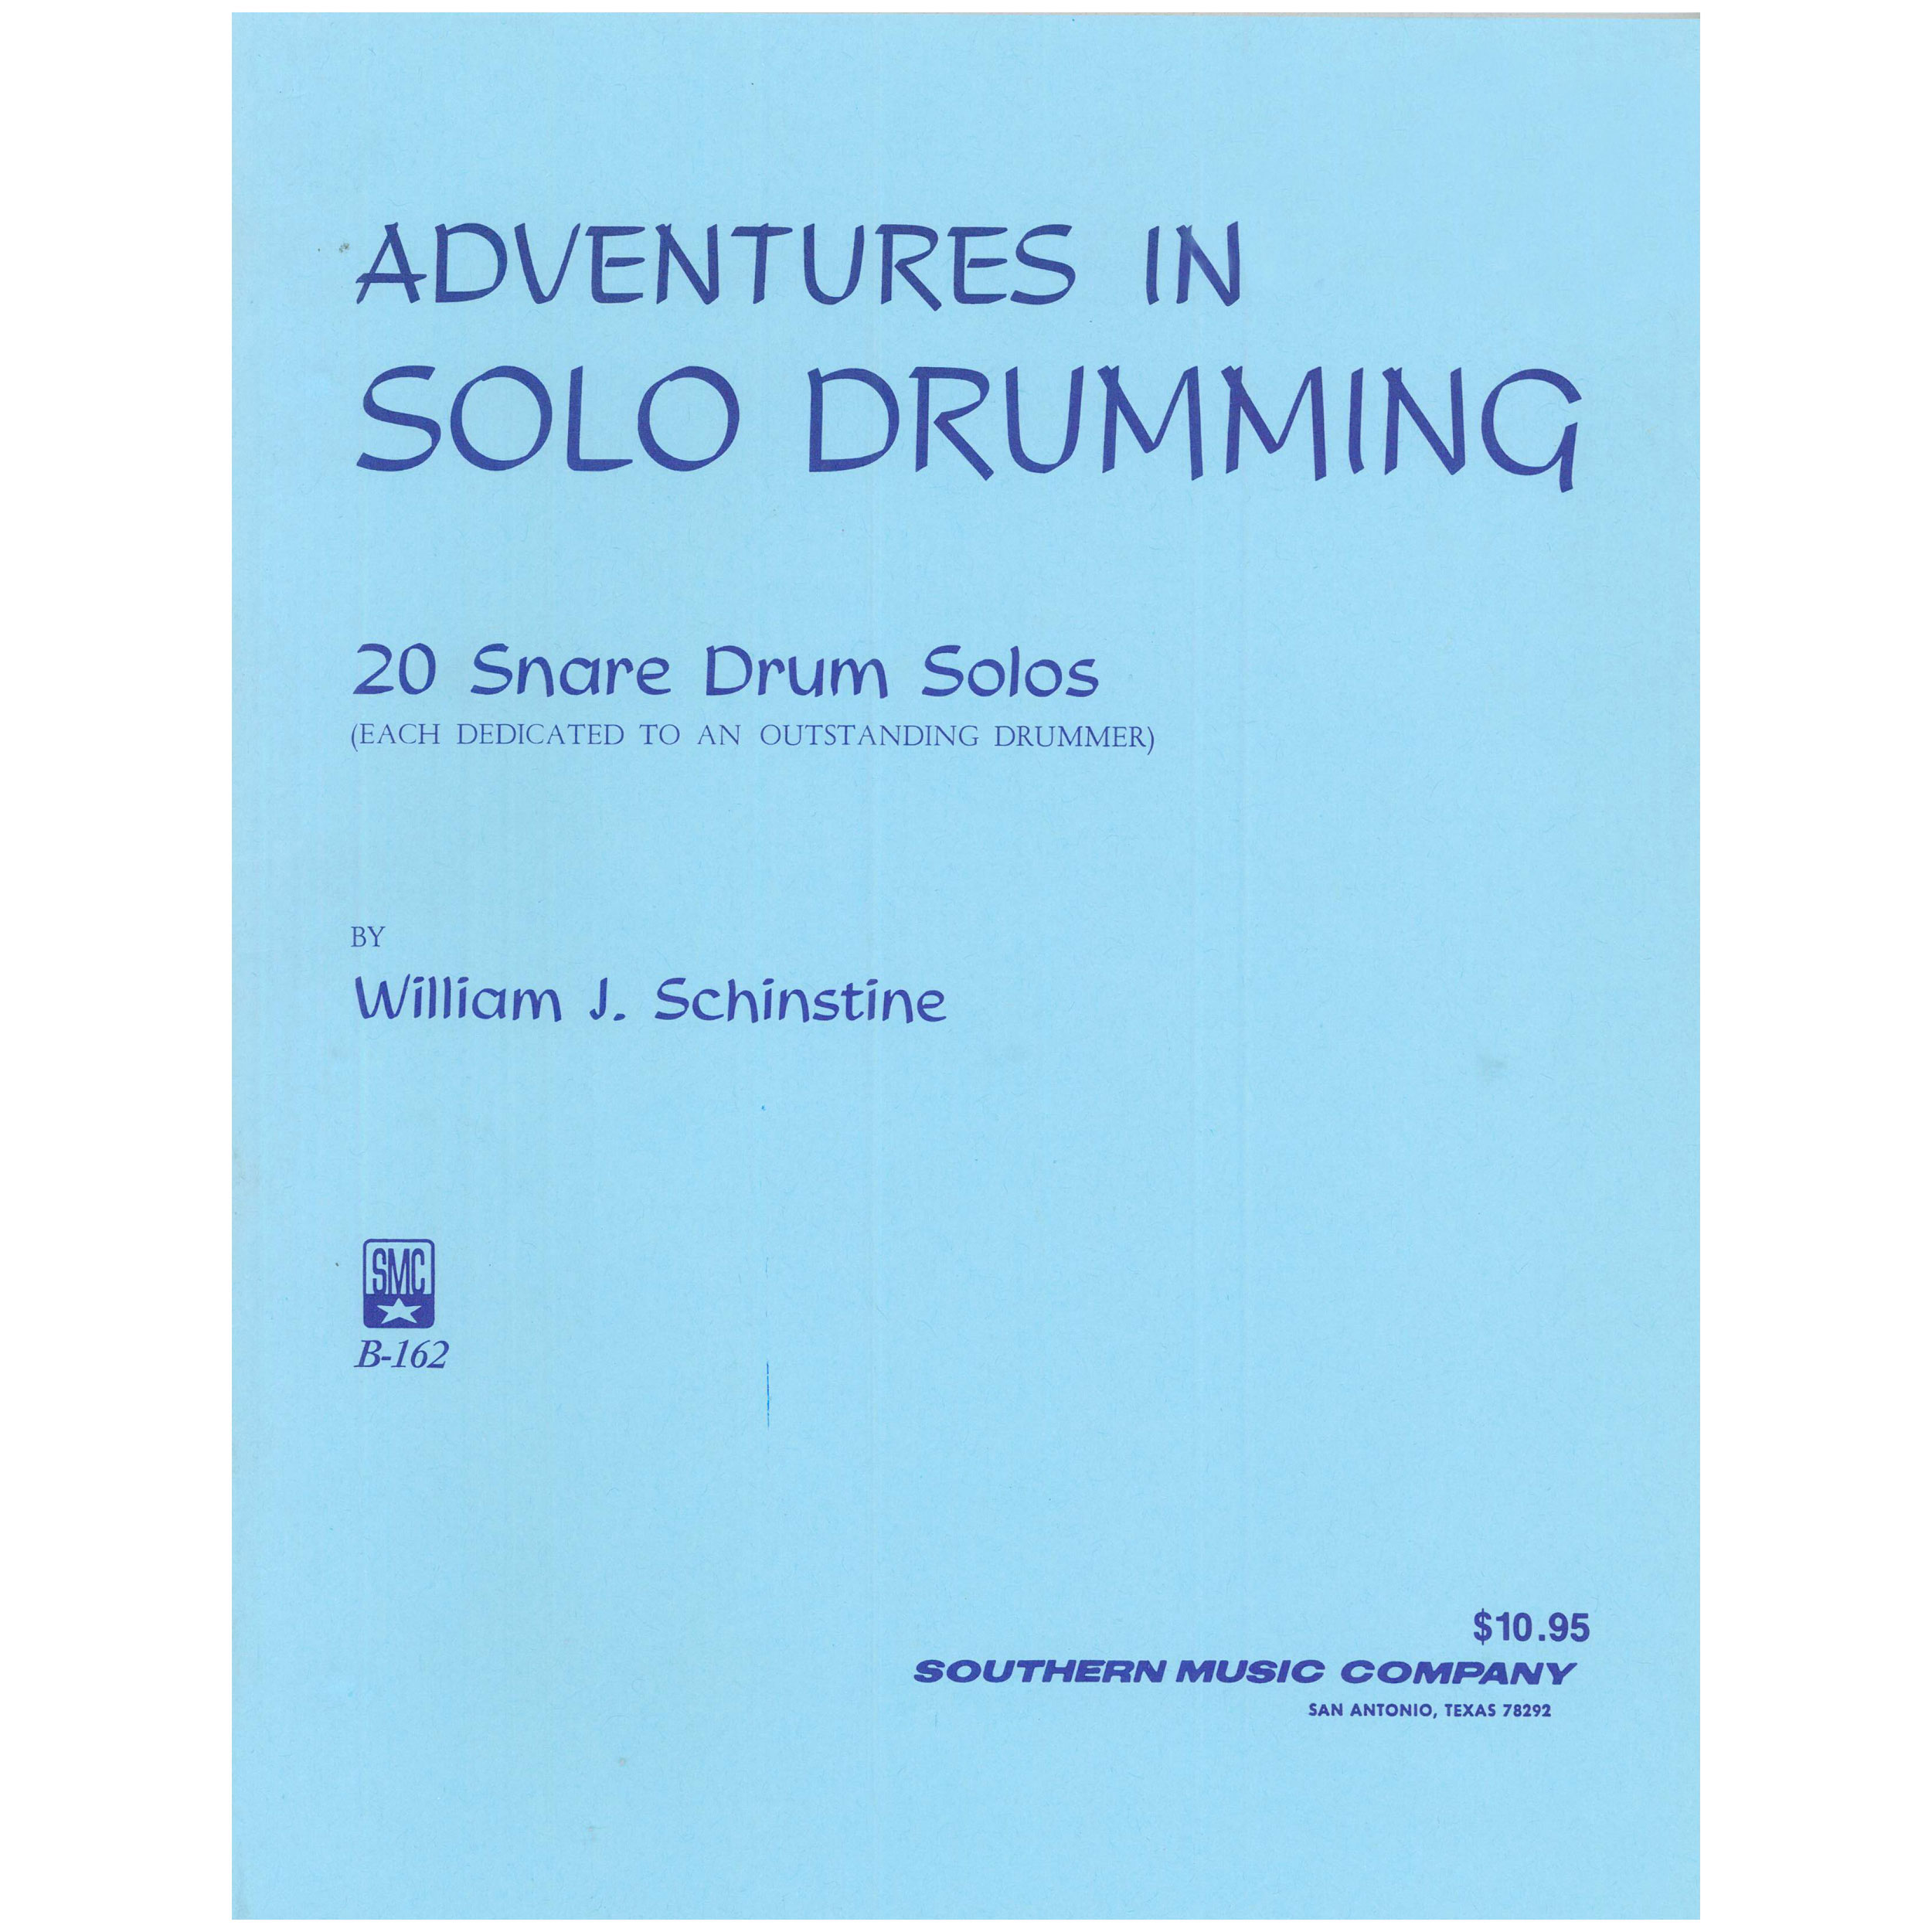 Adventures in Solo Drumming by William Schinstine